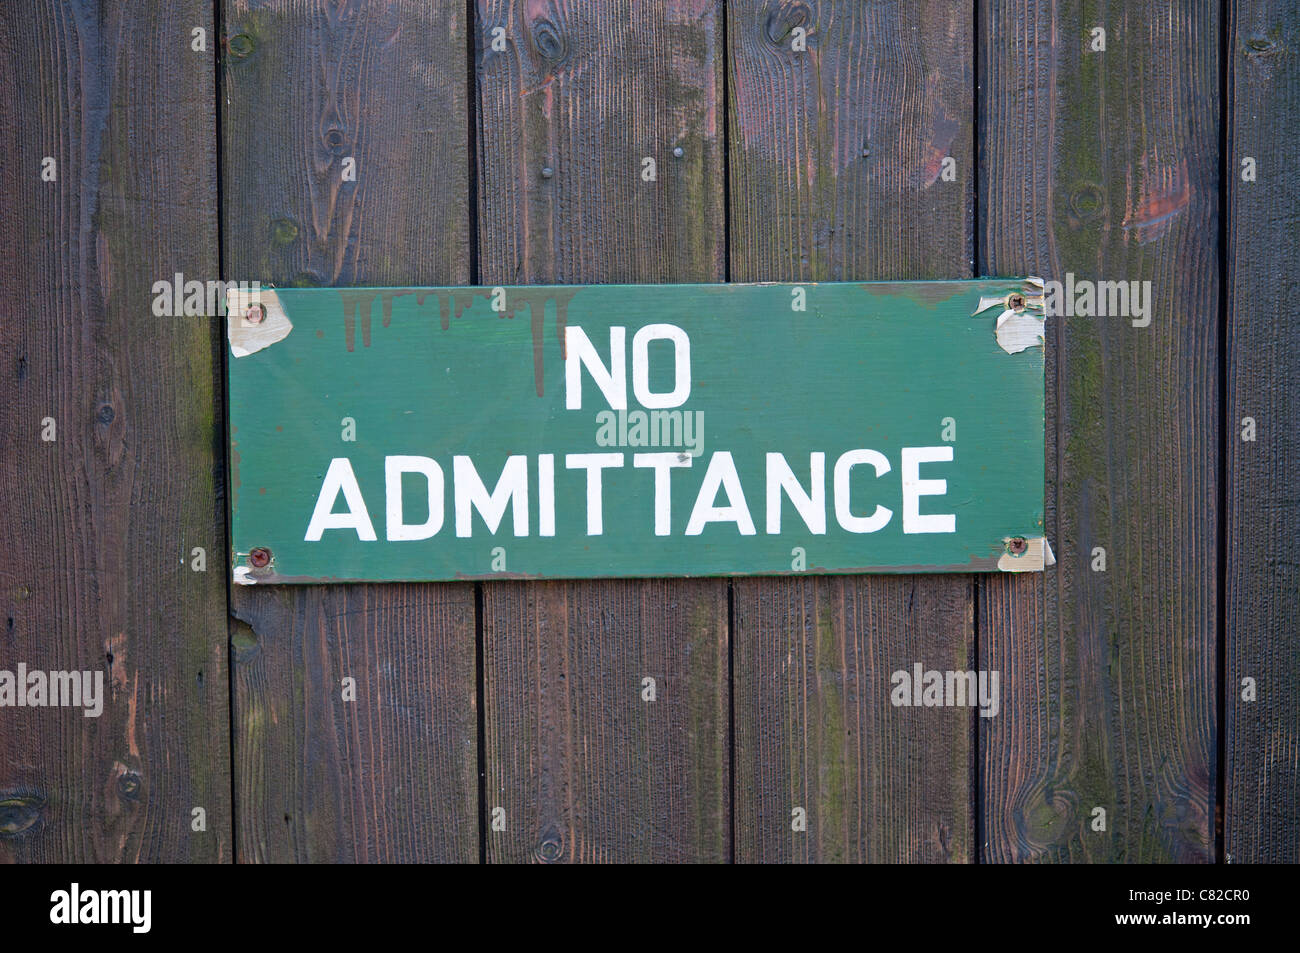 No Admittance Sign Stock Photos Amp No Admittance Sign Stock